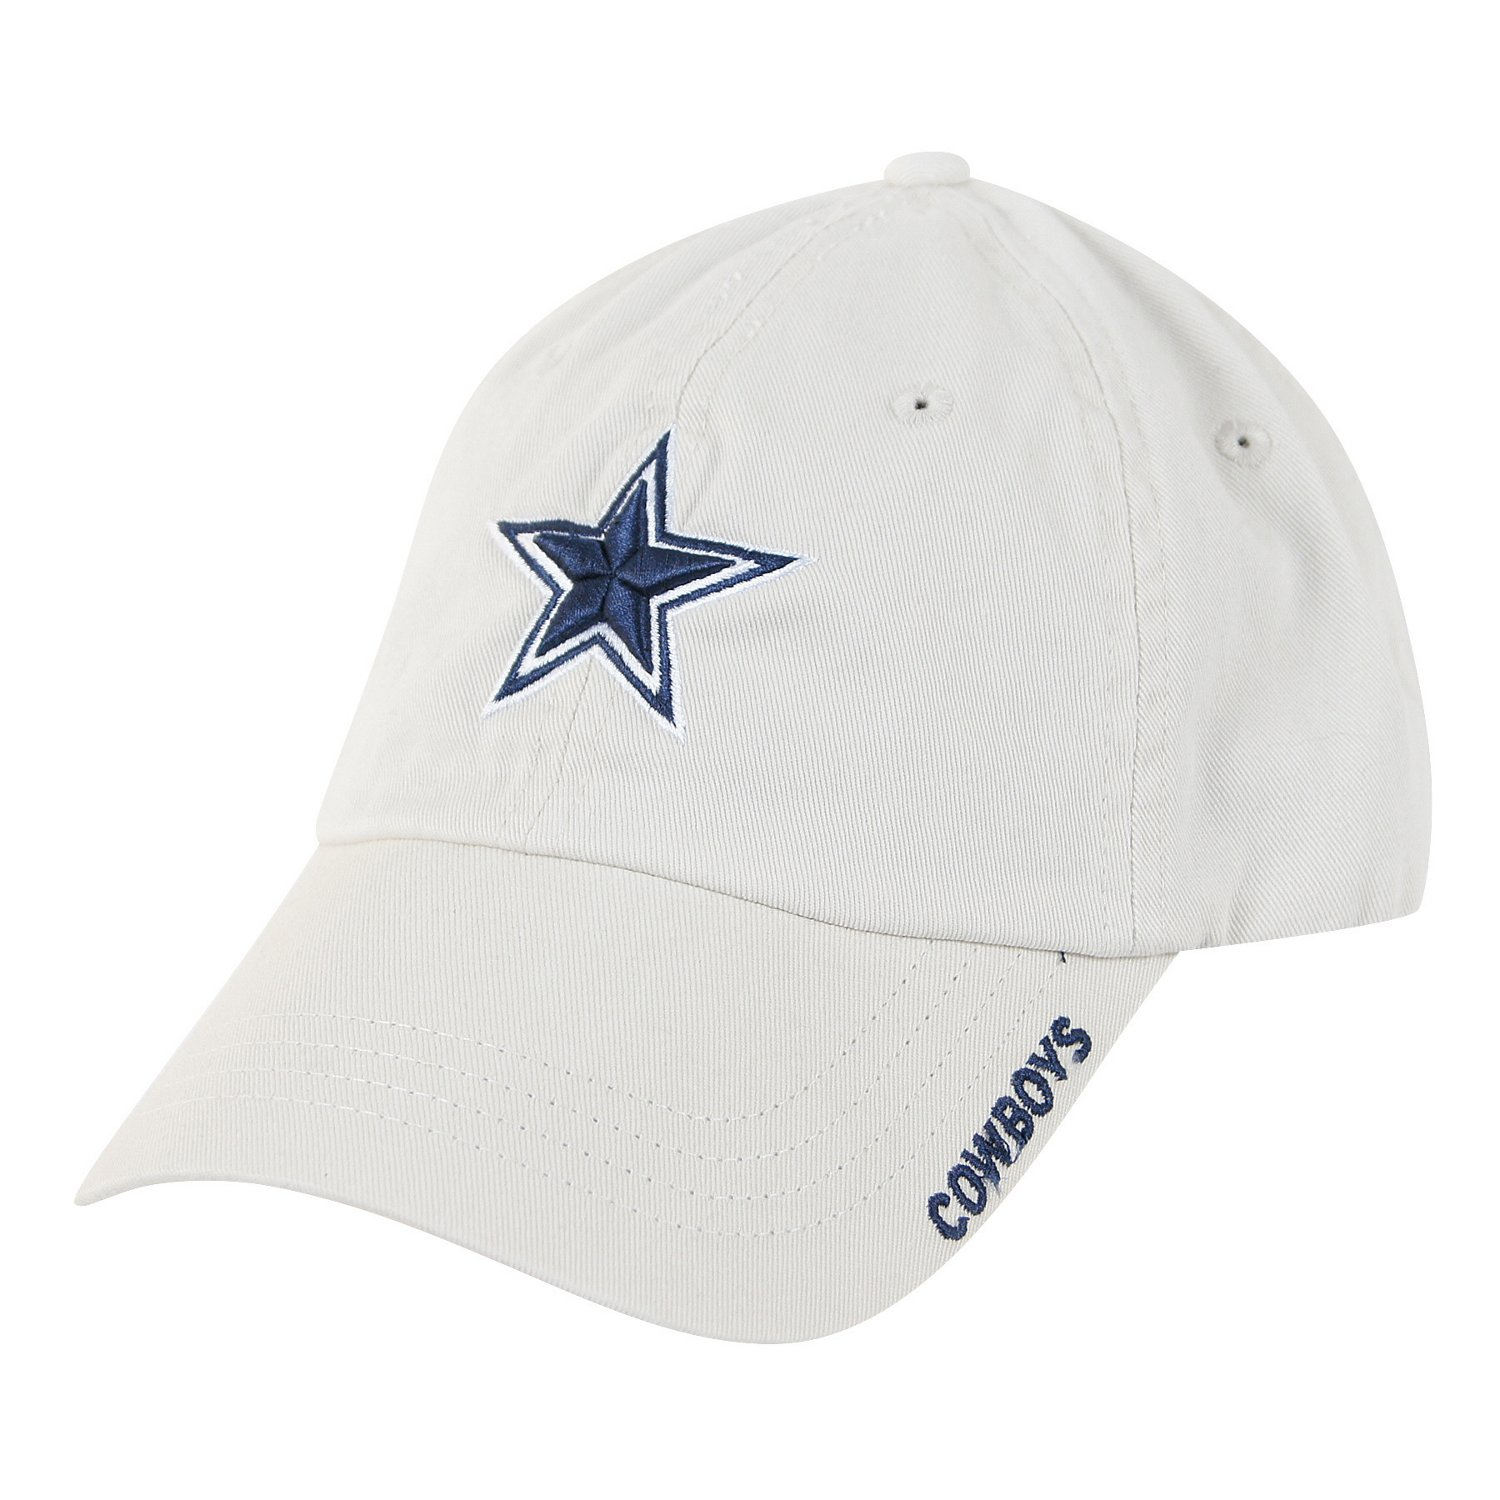 Display product reviews for Dallas Cowboys Men s Basic Slouch Cap e56542f39b94